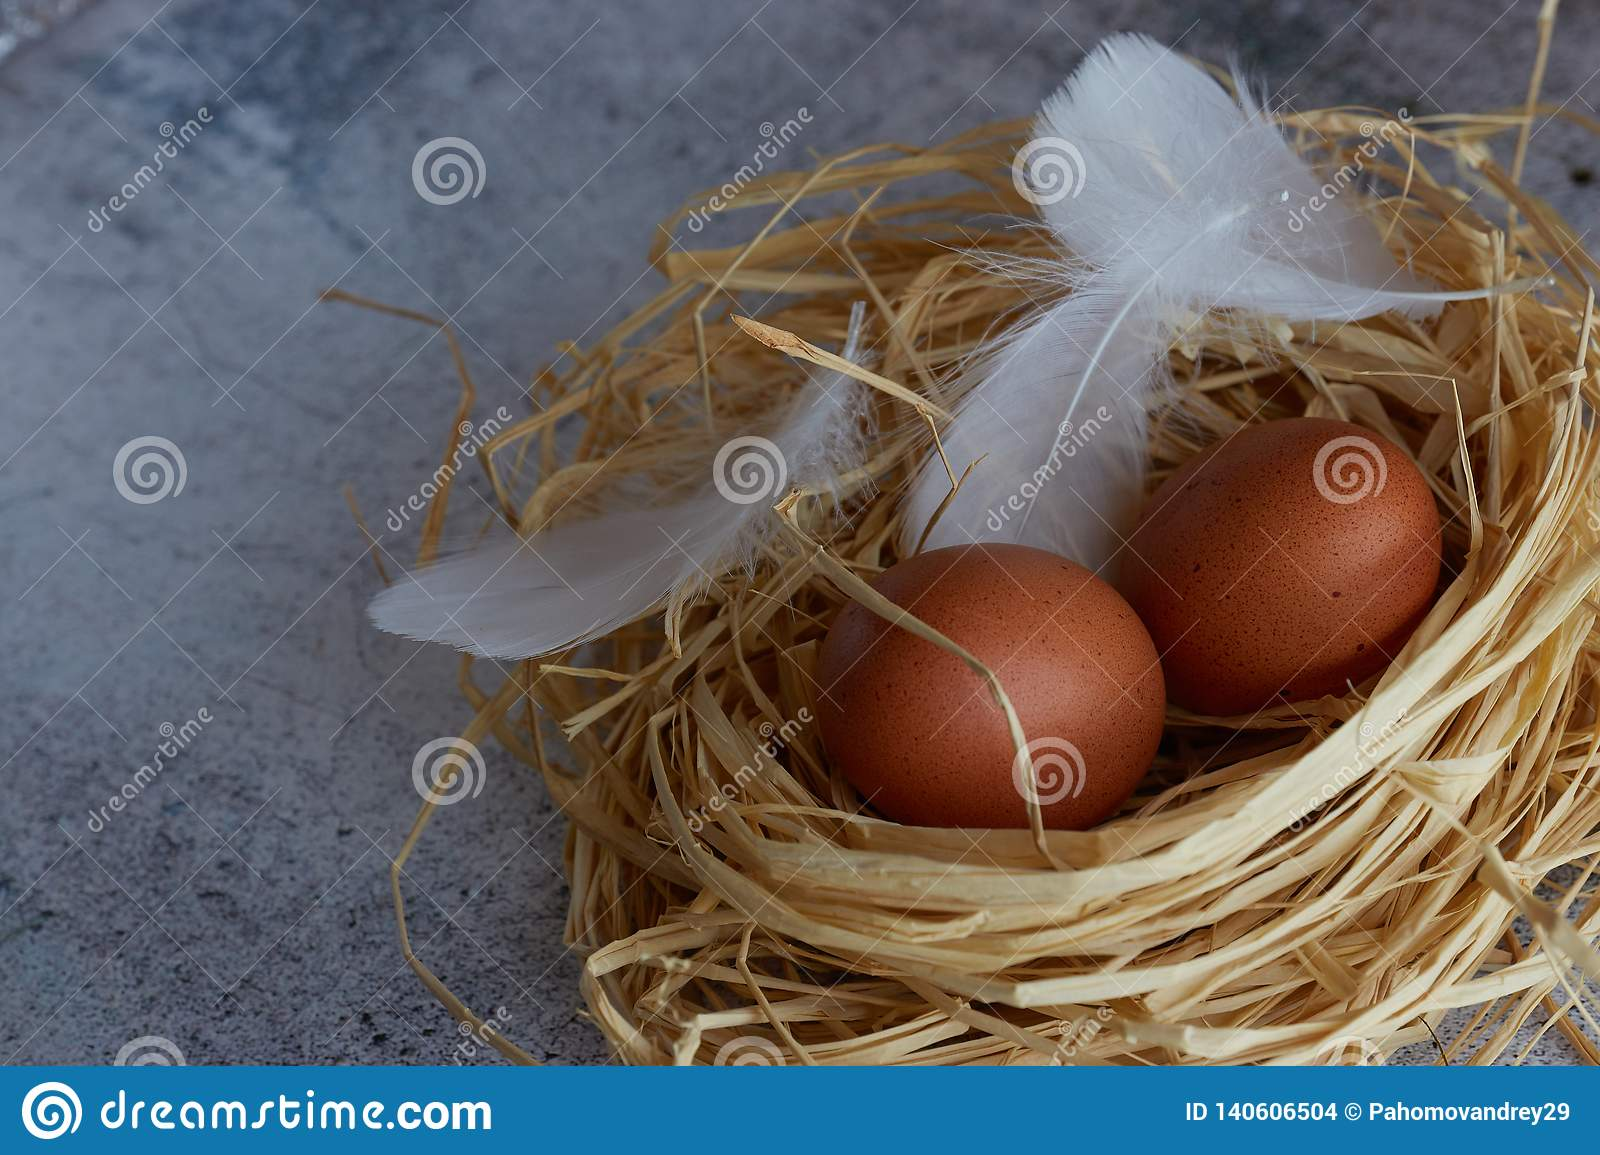 Brown chicken eggs with white feathers in hay nest on light concrete. Copy space. horizontal view of raw chicken eggs. Village